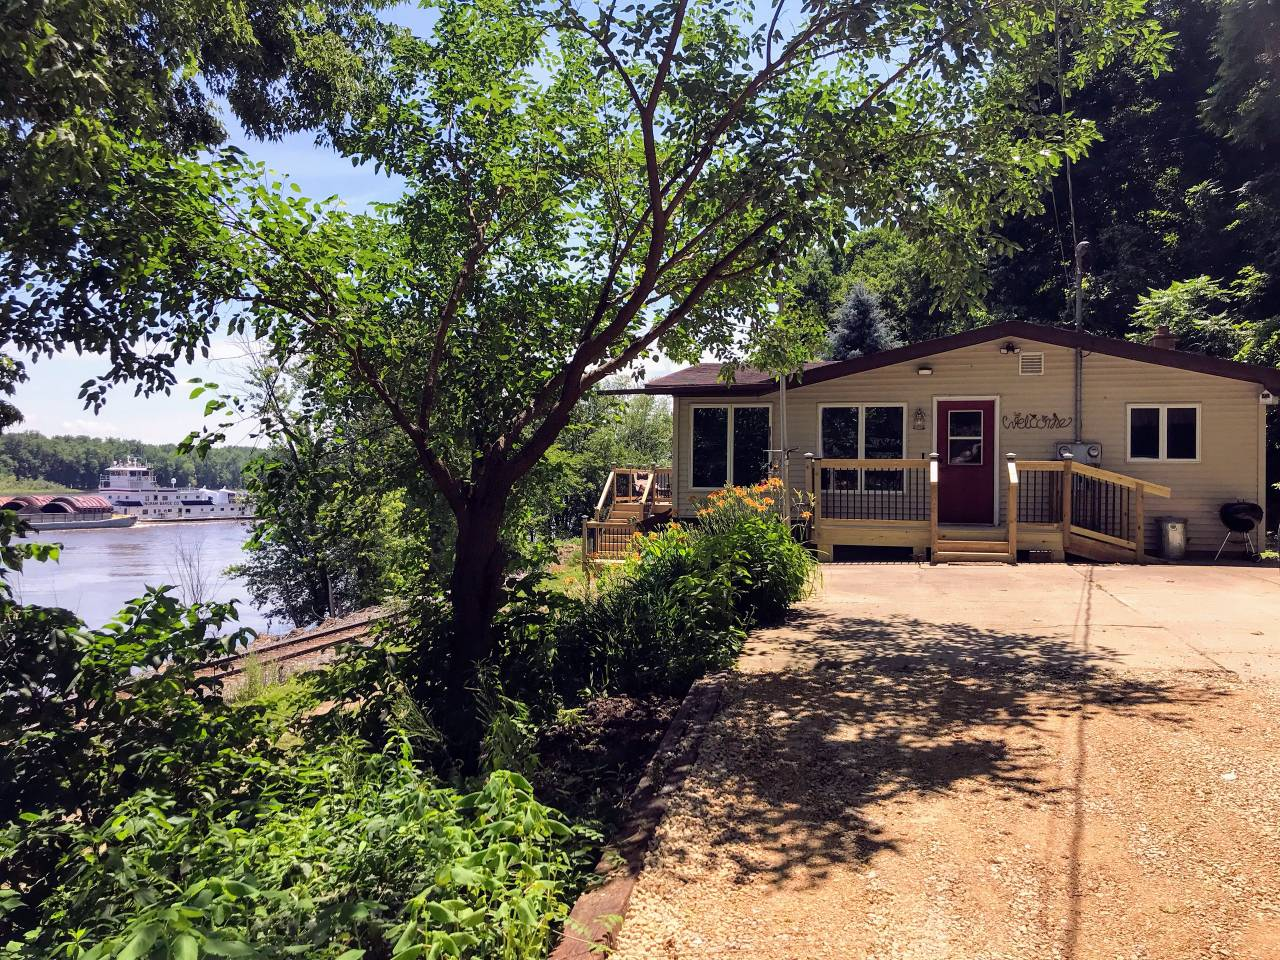 GREAT RIVER GETAWAY GUTTENBURG, IA -